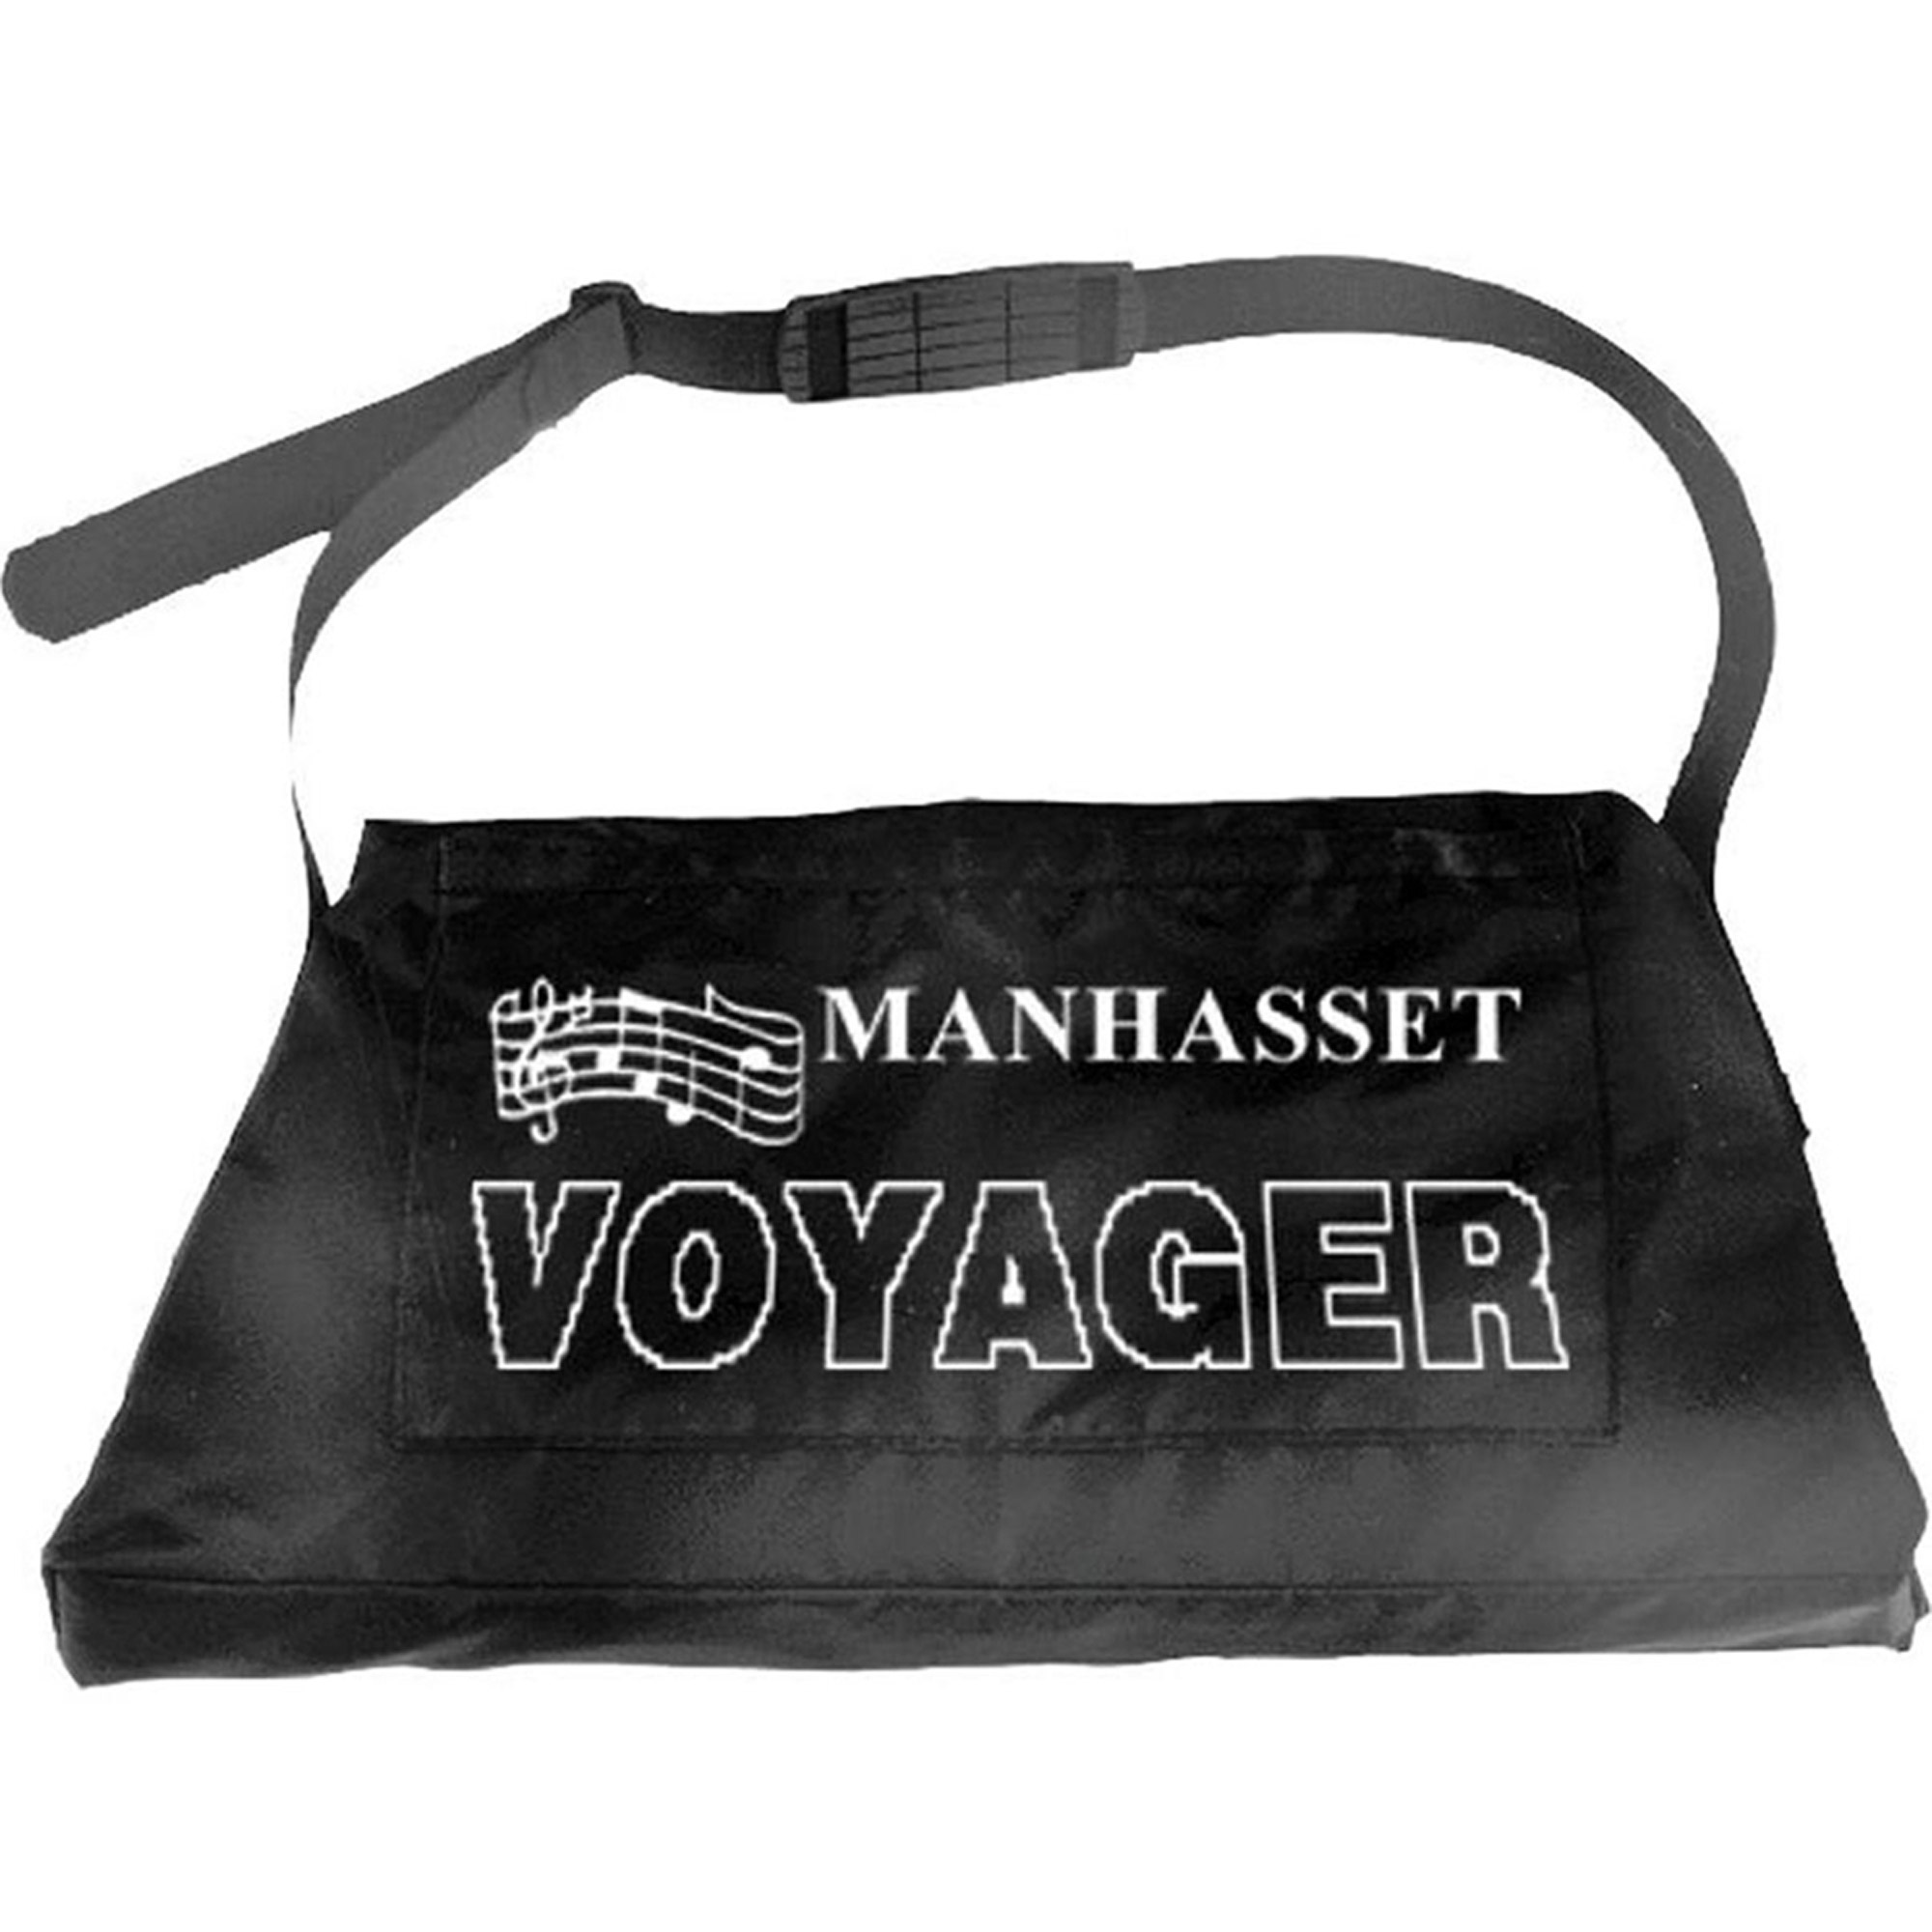 1800 Voyager Tote Bag for Voyager Music Stand